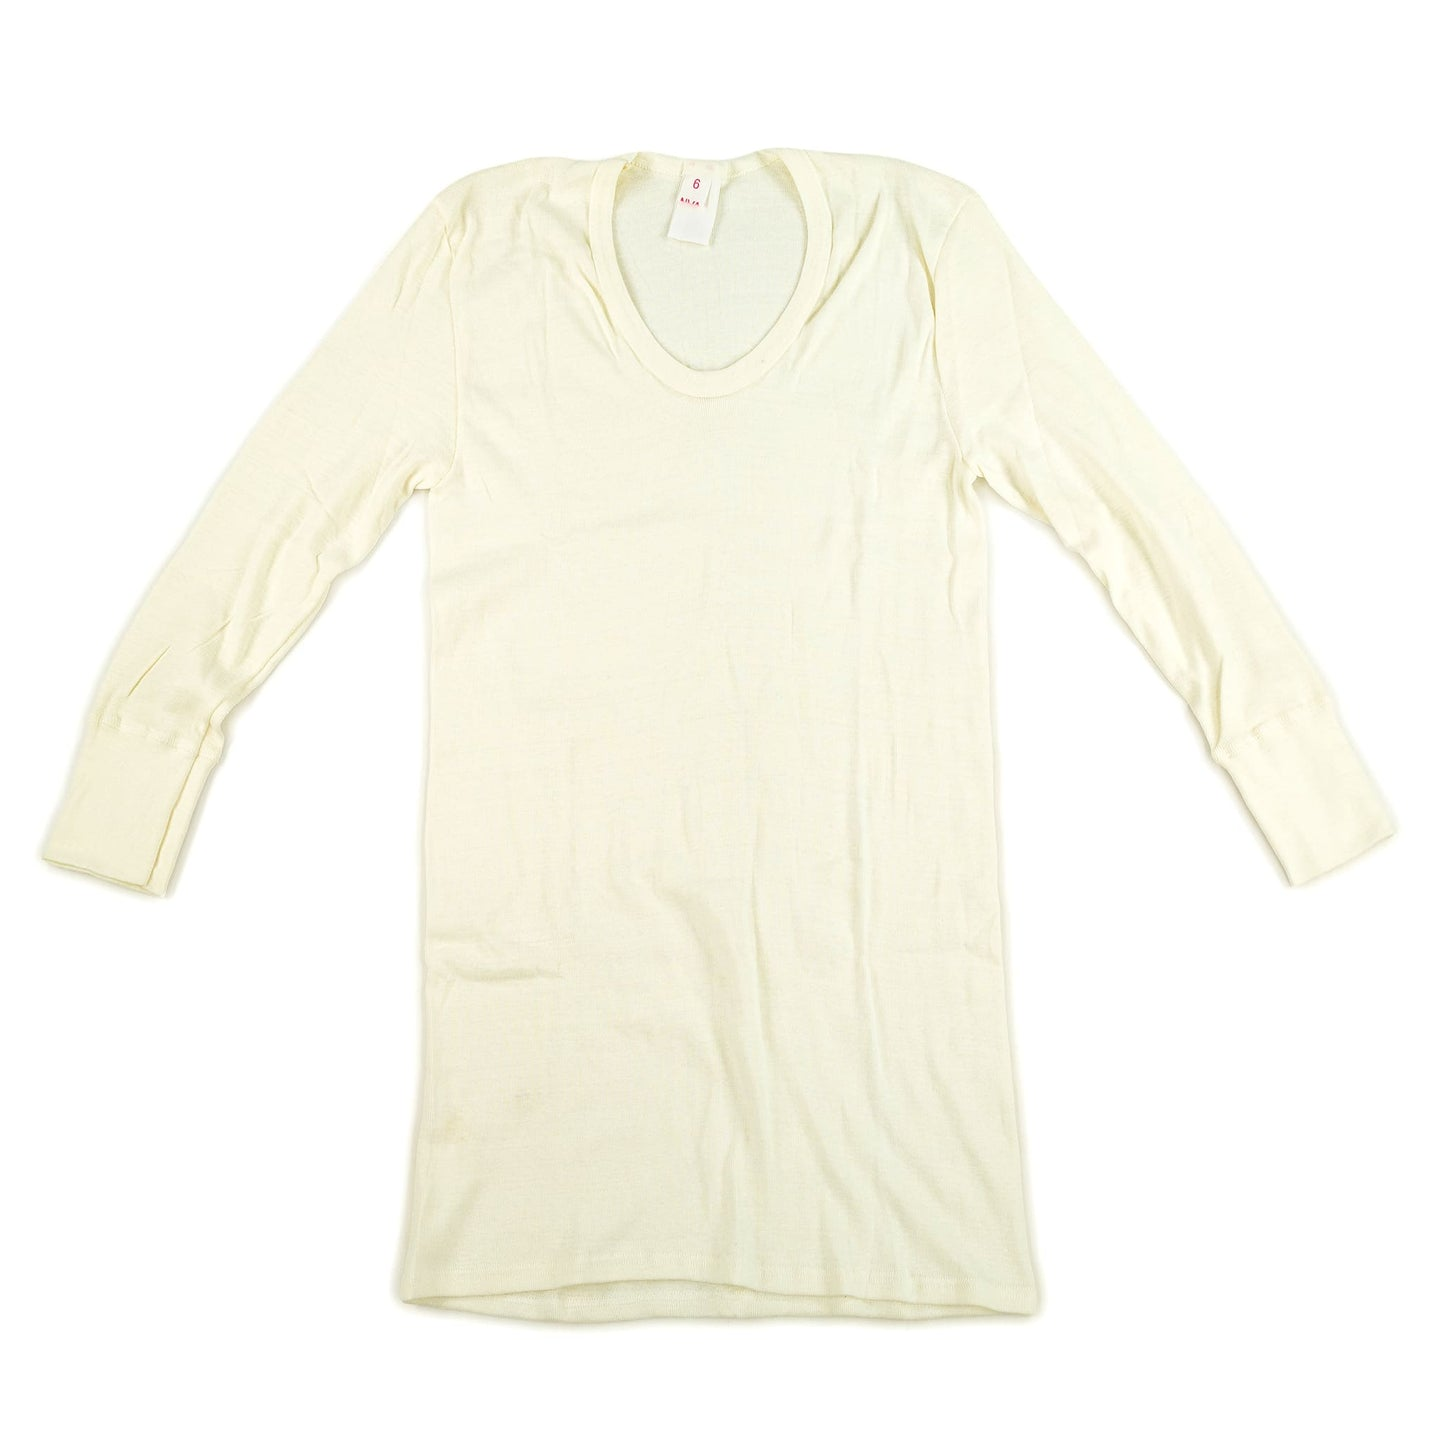 East German Long Sleeve Undershirt